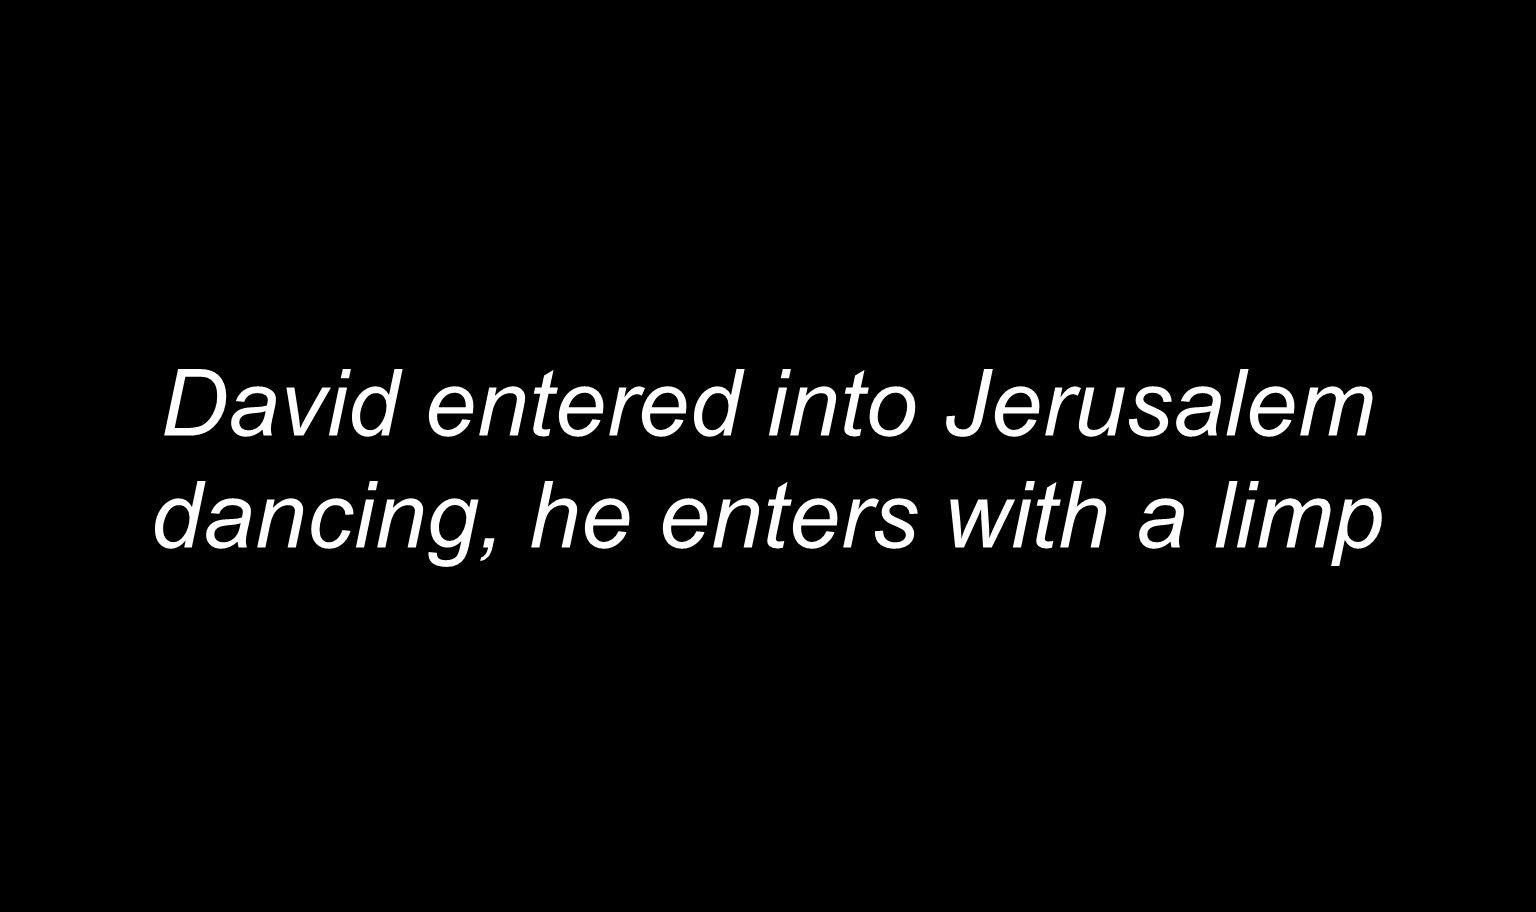 David entered into Jerusalem dancing, he enters with a limp